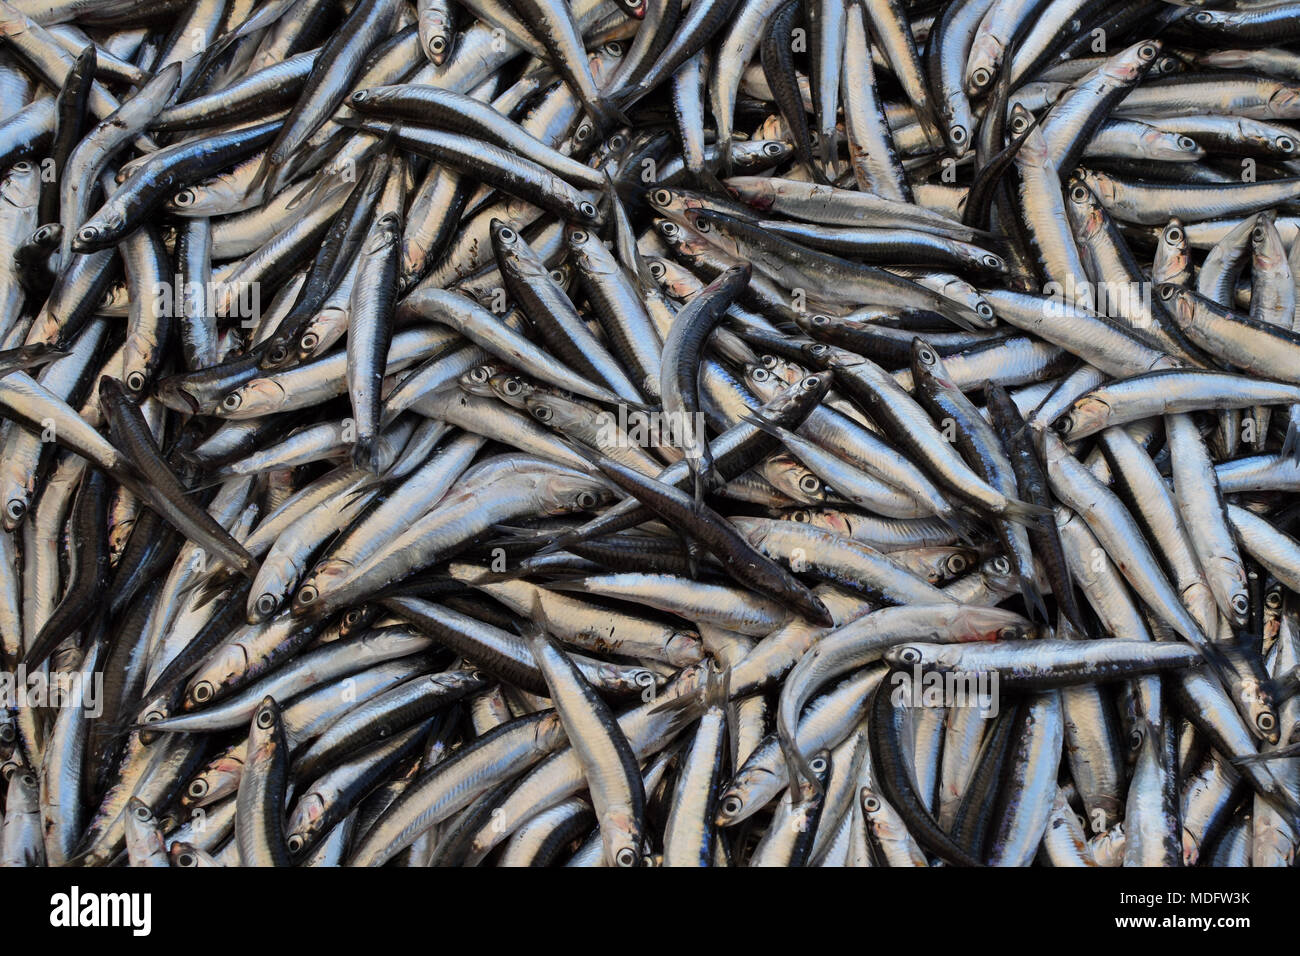 Sprat small forage fish for sale at street market. - Stock Image